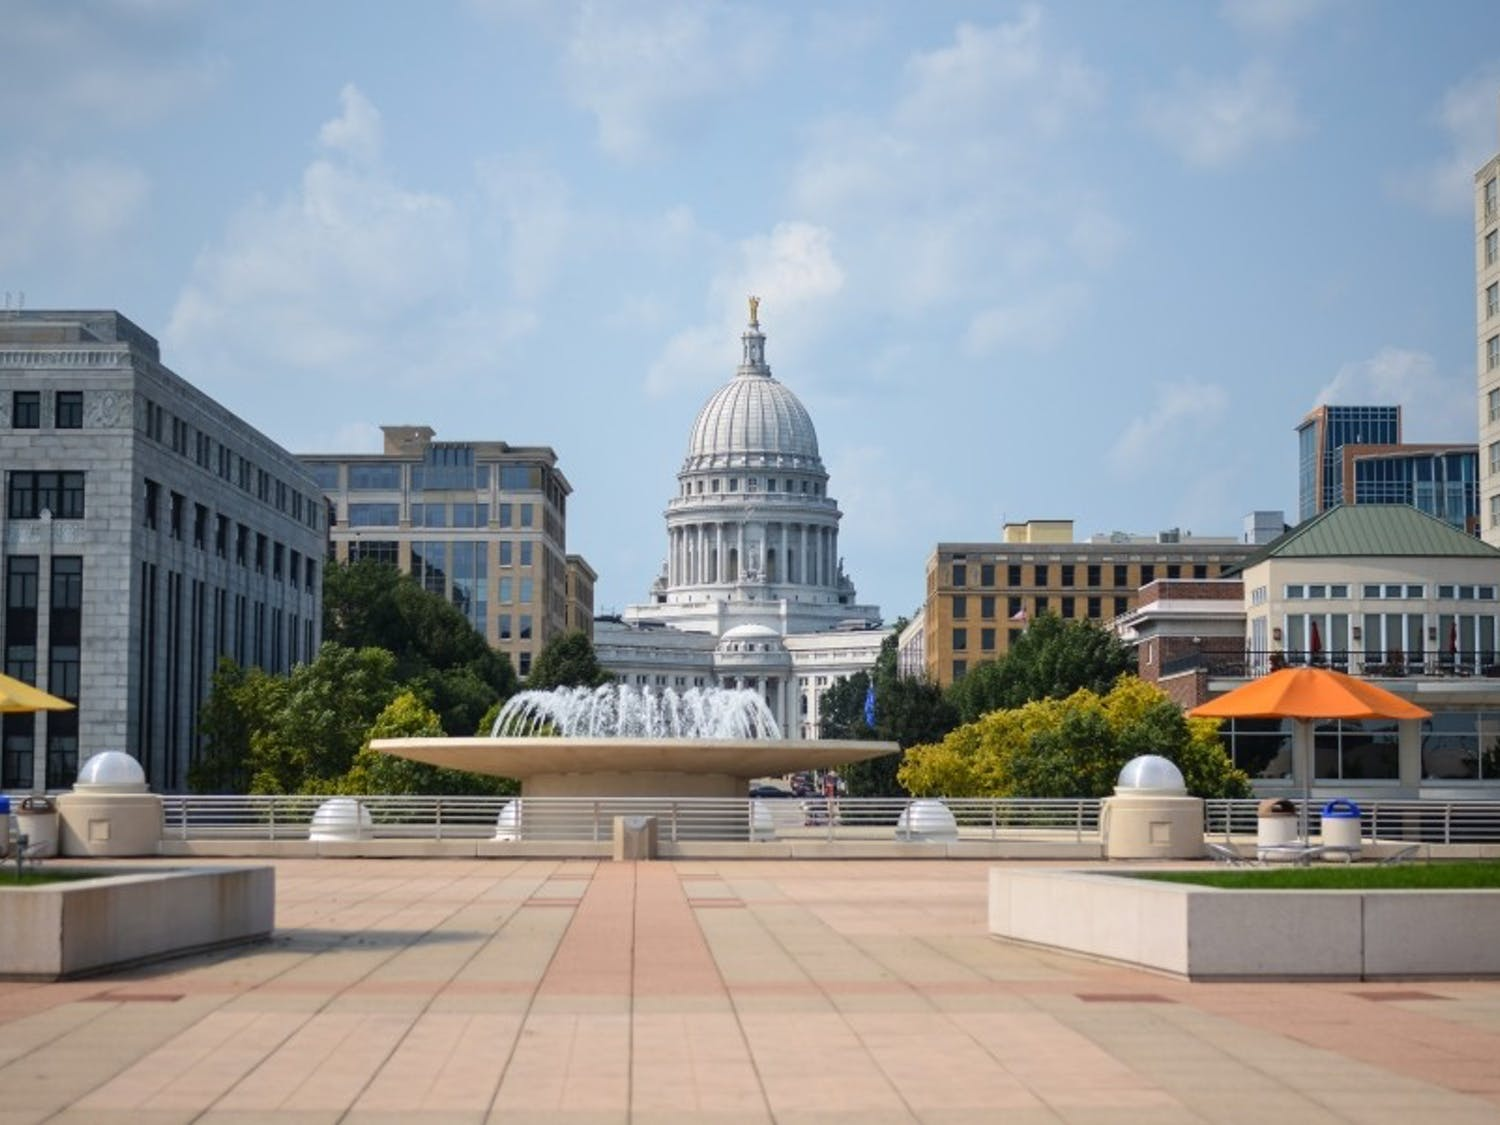 The city of Madison will change the Public Market development's location from a privately-developed venture to a city-owned building.